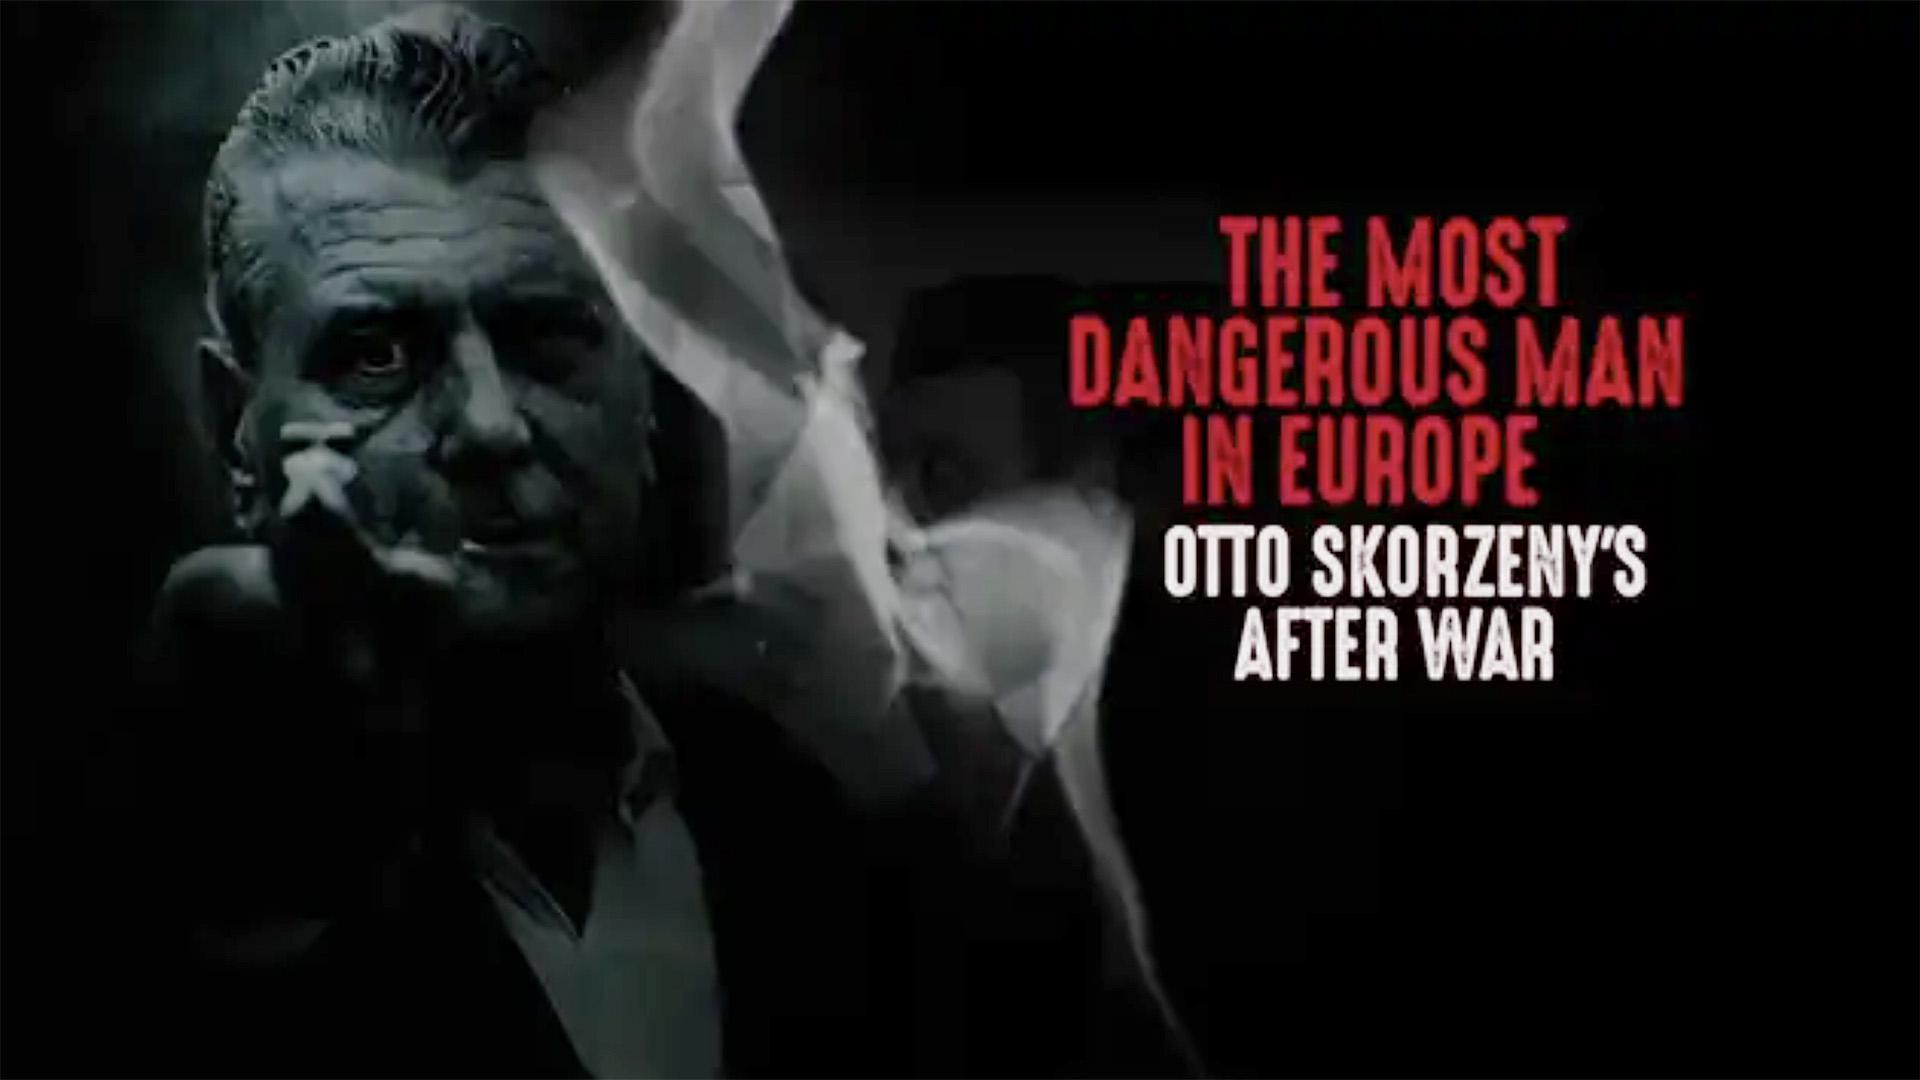 THE MOST DANGEROUS MAN IN EUROPE. OTTO SKORZENY'S AFTER WAR